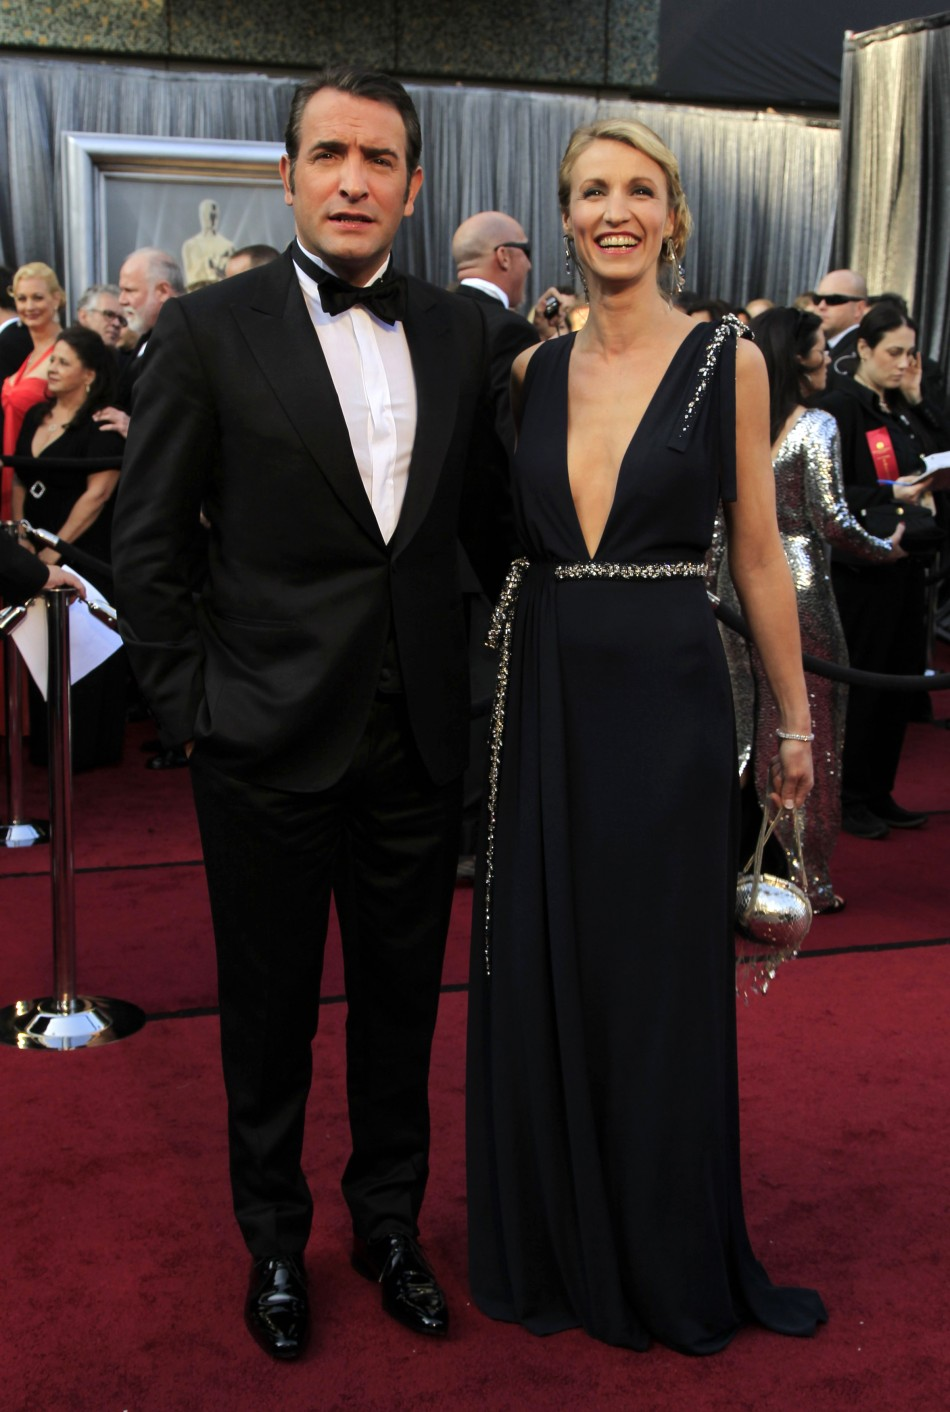 French actor Dujardin and his wife Alexandra Lamy arrive at the 84th Academy Awards in Hollywood